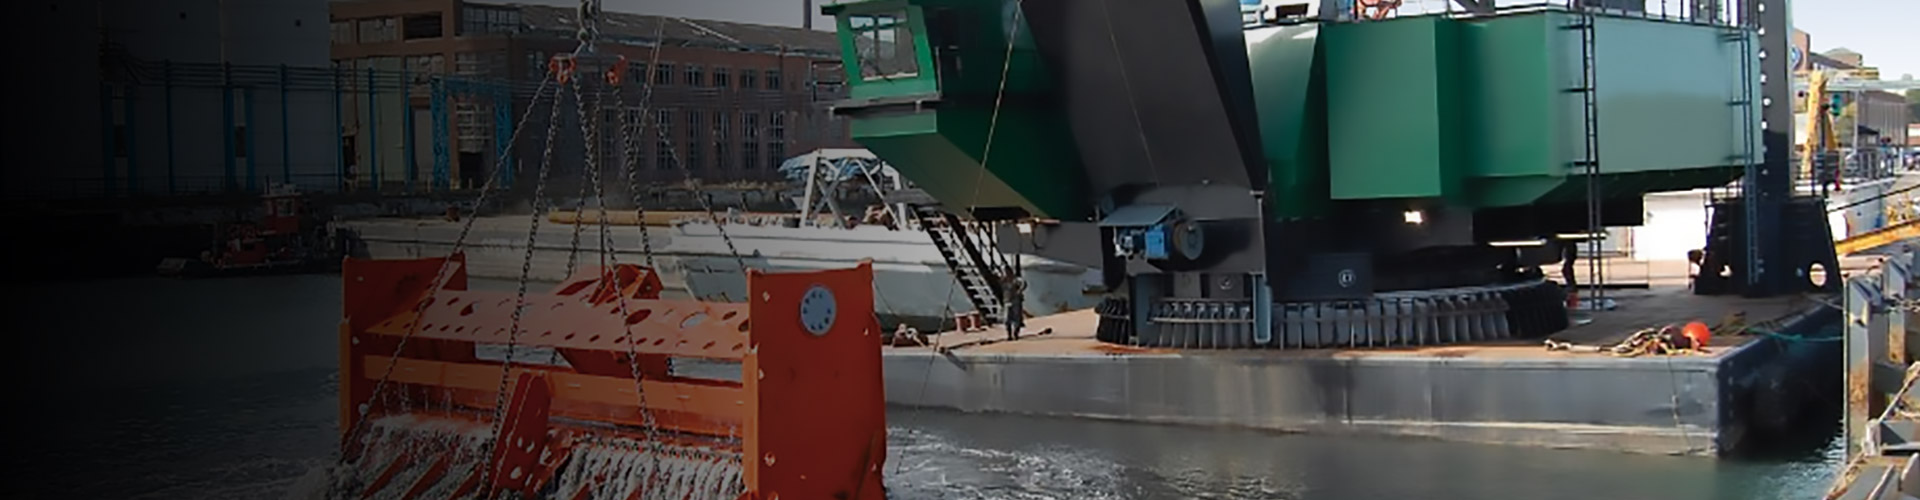 Largest Barge Dredge News Feature